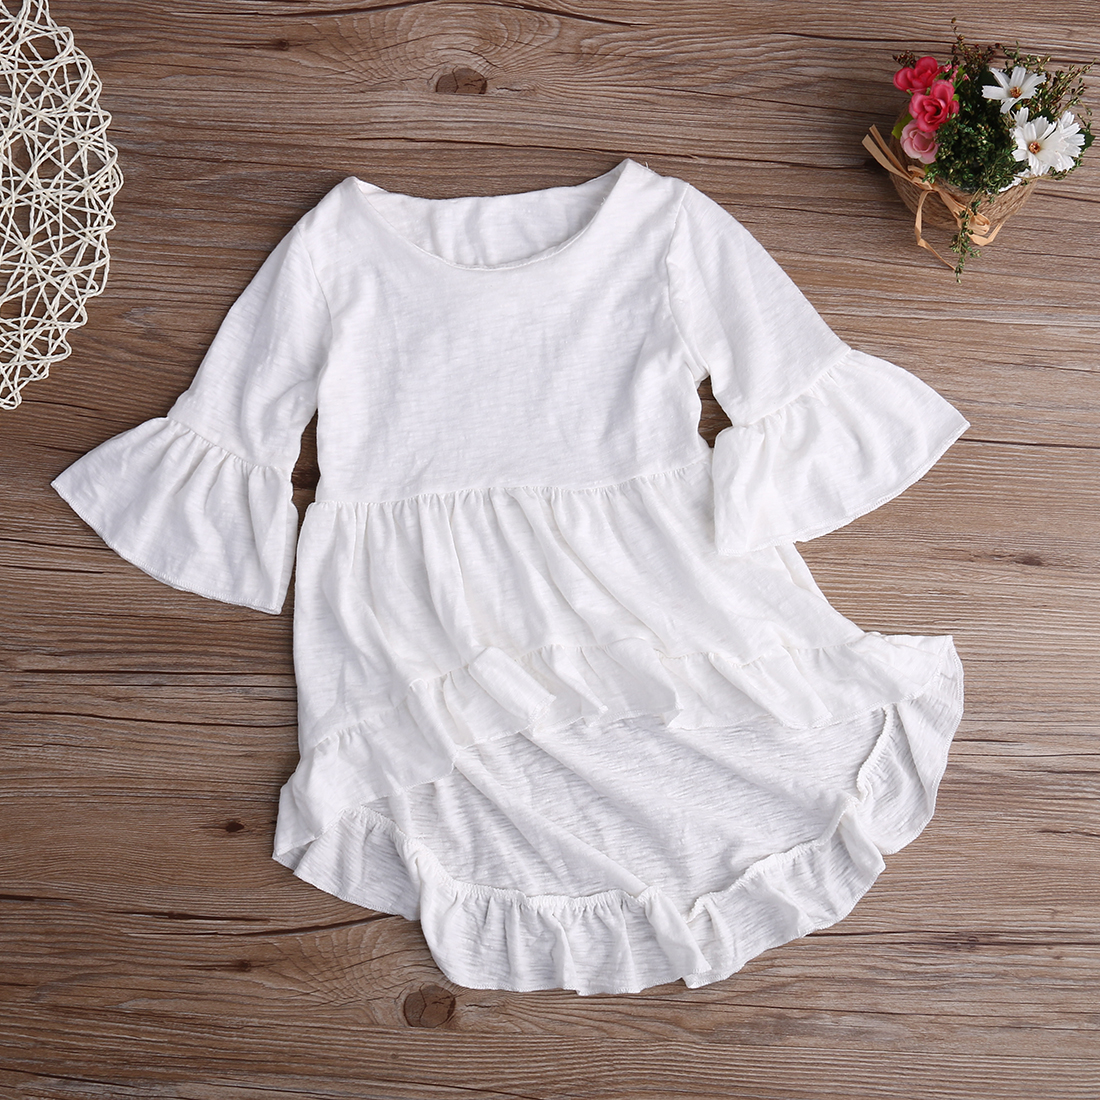 White Baby Girls Dress Frills Flare Sleeve Top T-Shirt Party Ruffles Hem Dresses 1-6Y high qualtiy oil cooler for 50cc 70cc 90cc 110cc dirt bike pit bike monkey bike dax pocket bike atv motorcycle